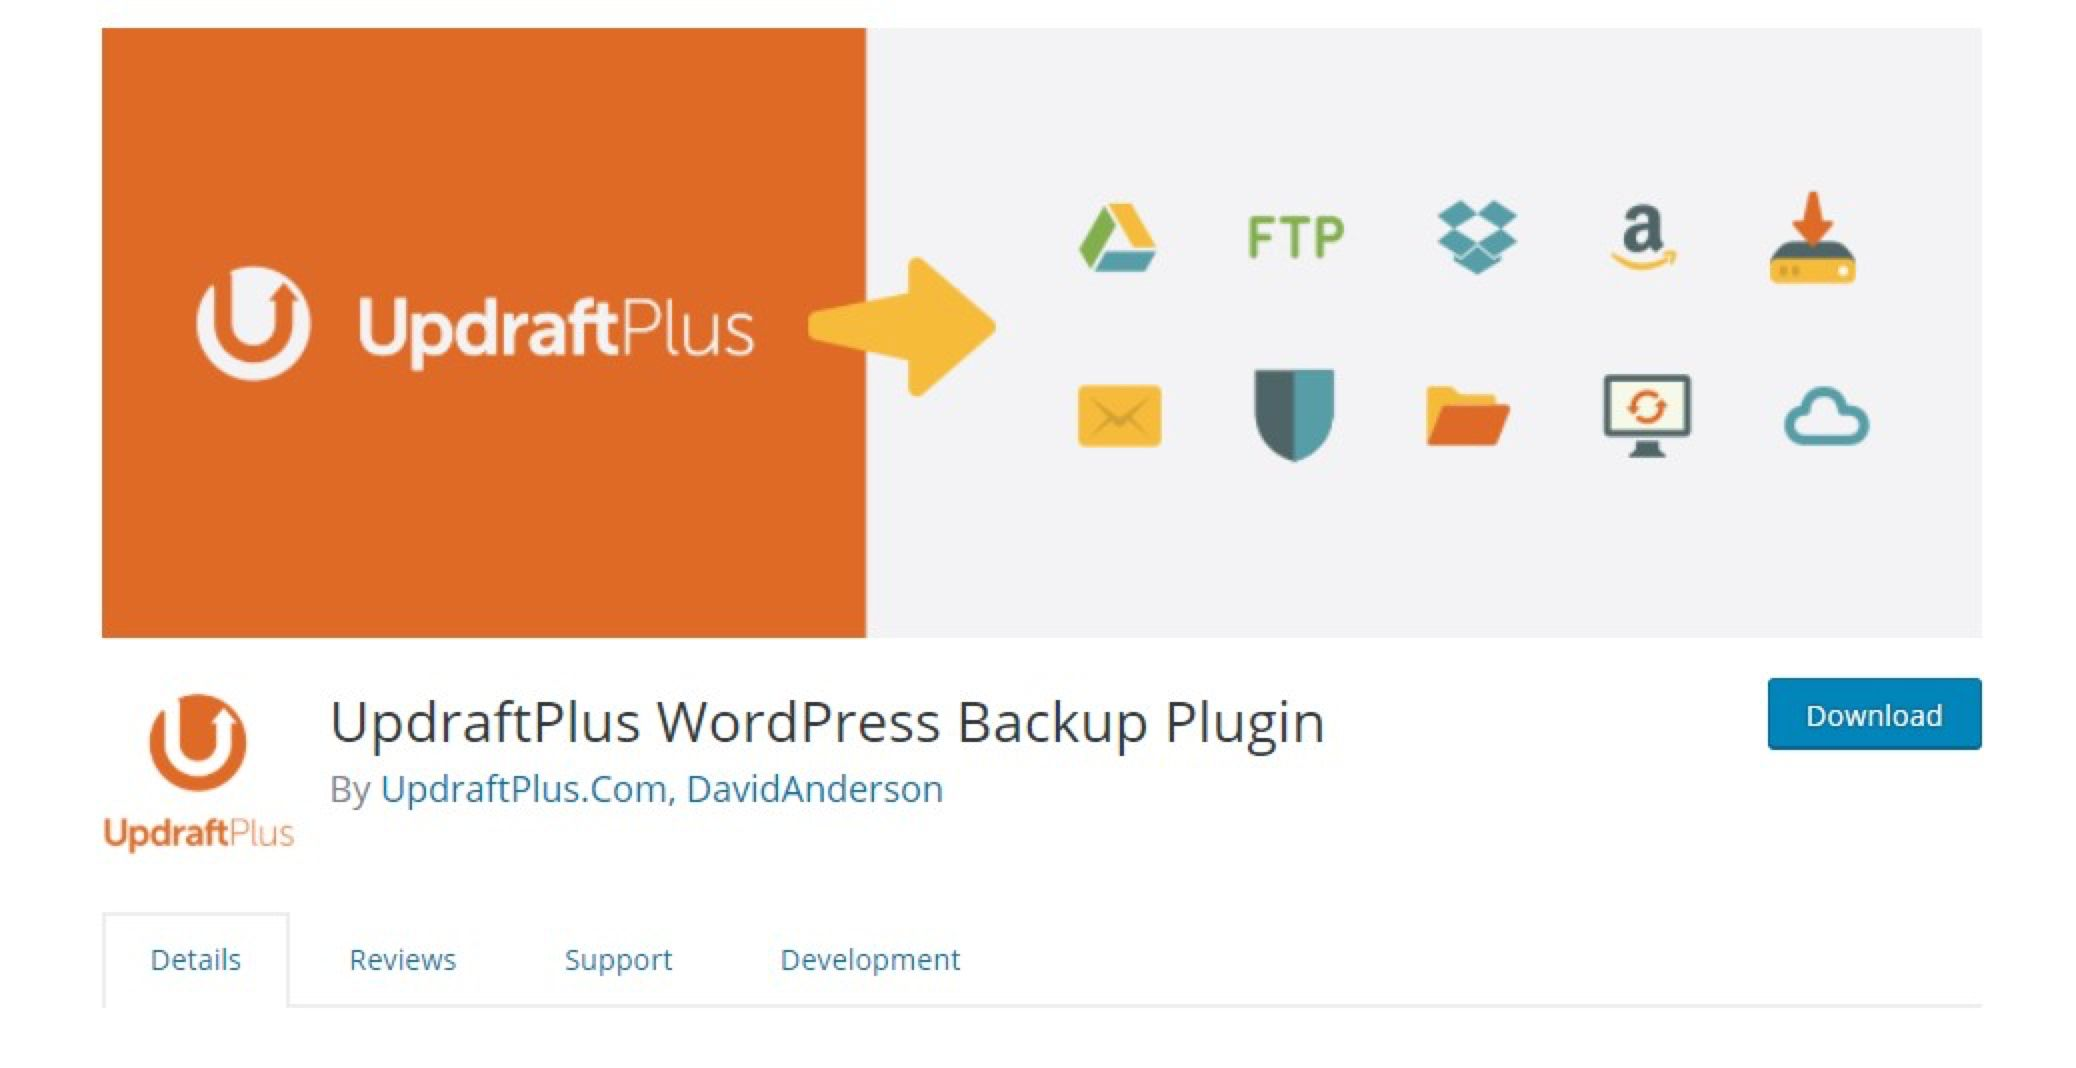 UpDraft Plus marketing image